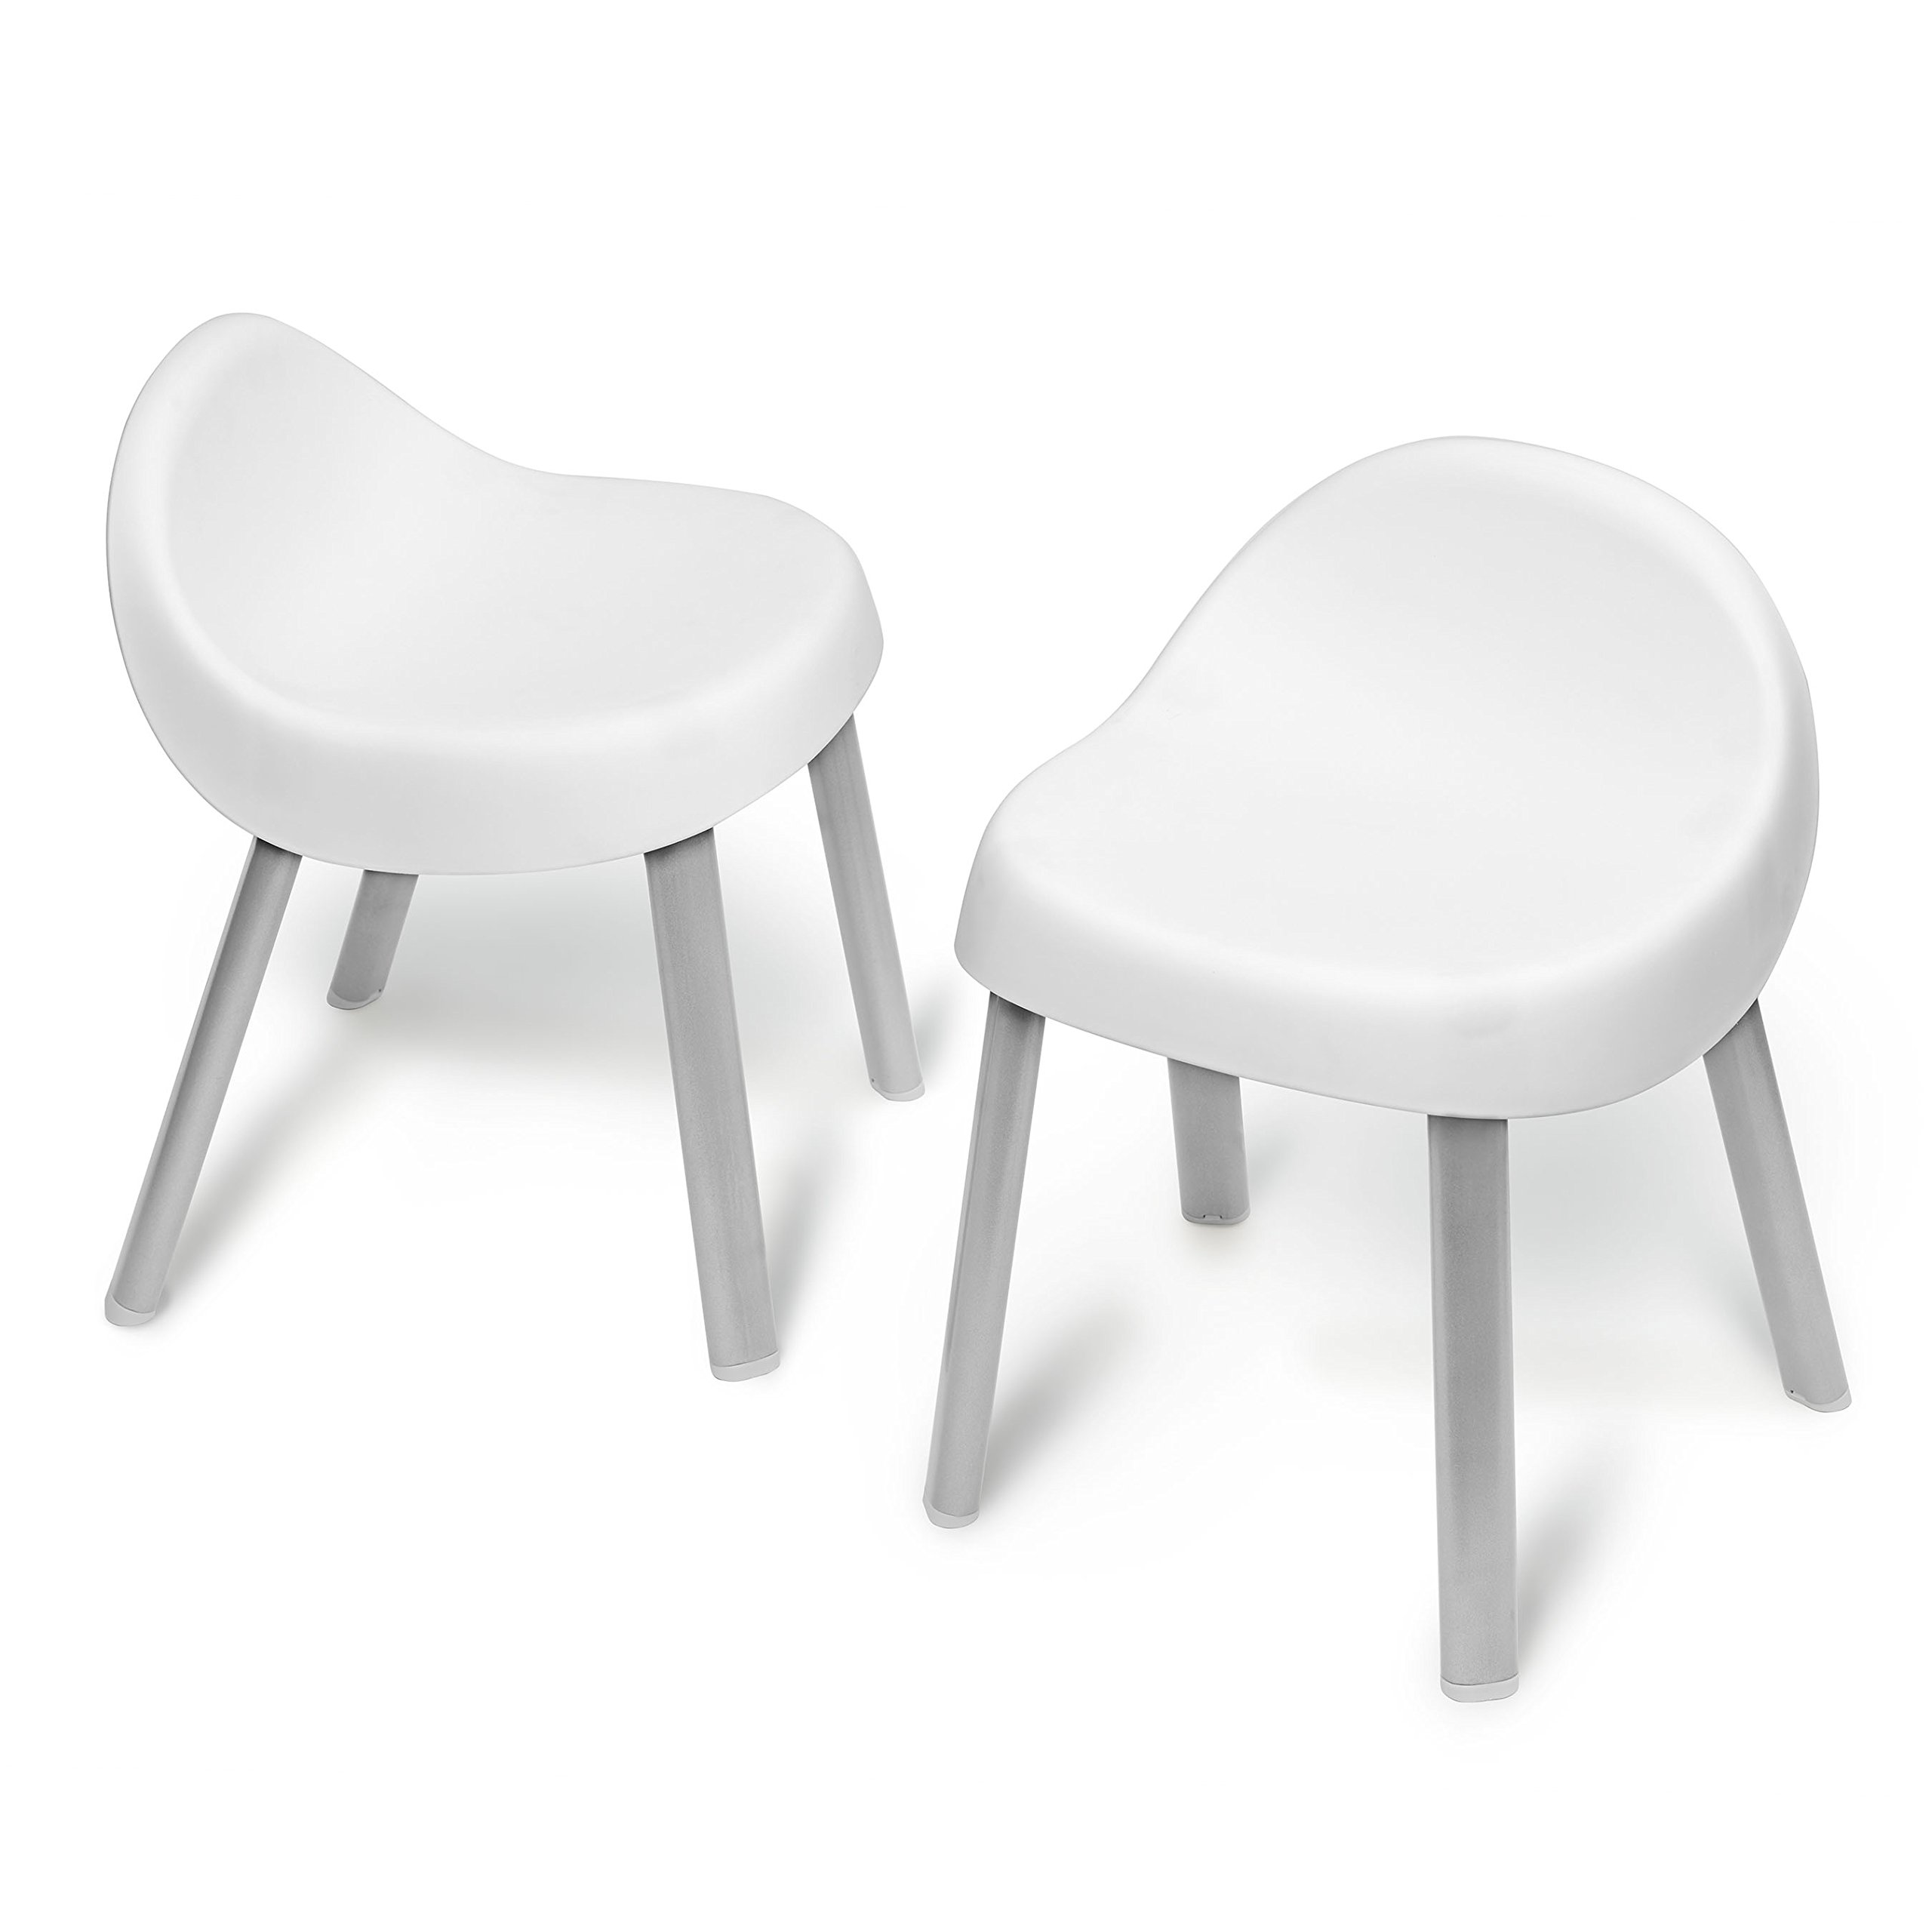 Skip Hop Explore & More Kids Chairs, White by Skip Hop